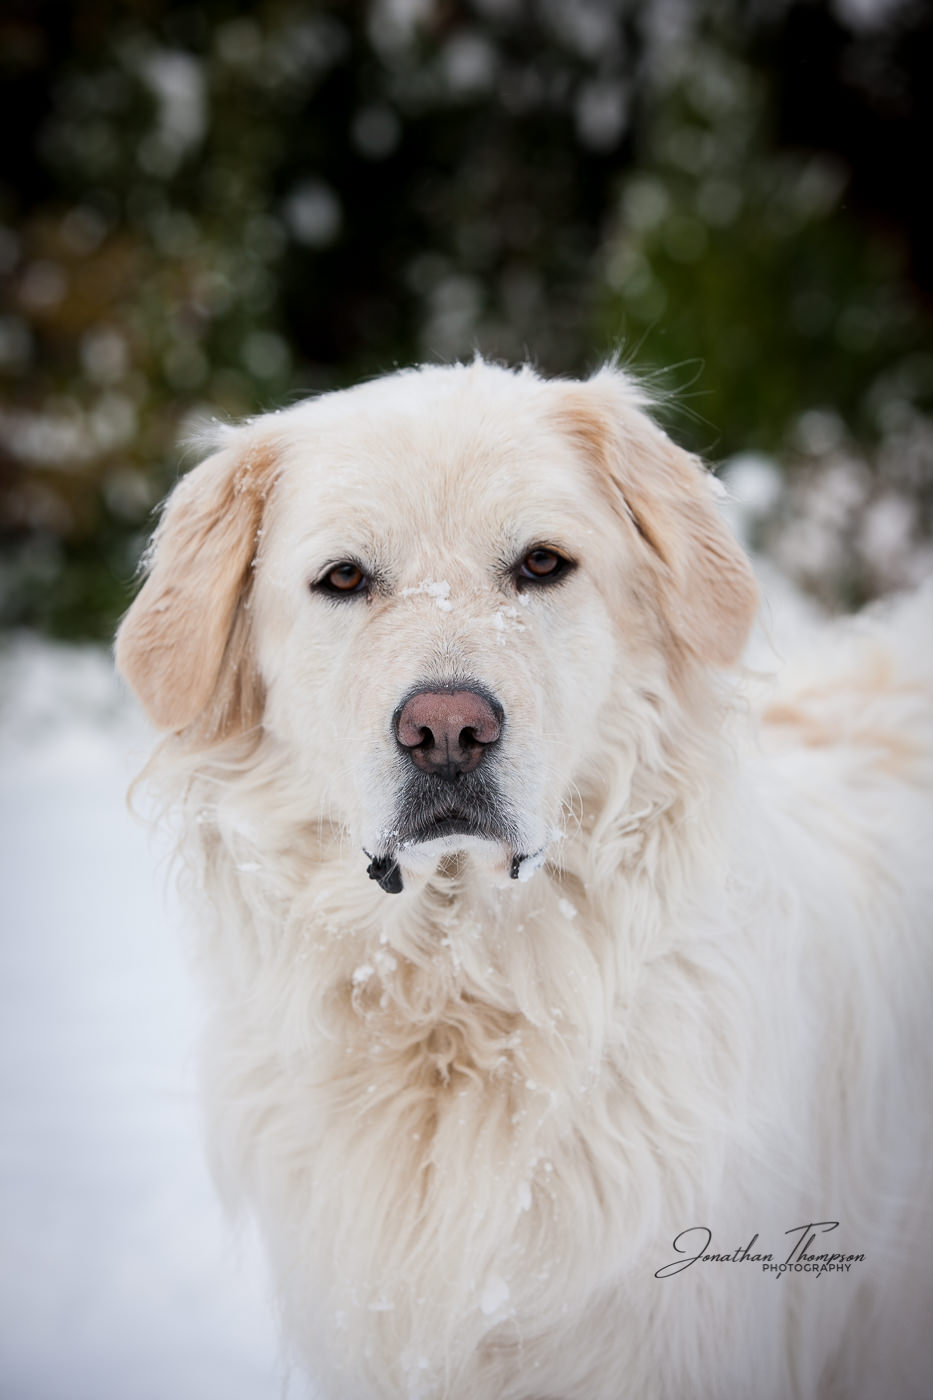 Tundra the Pyrenees Mountain Dog looking straight at camera looking alert in the snow